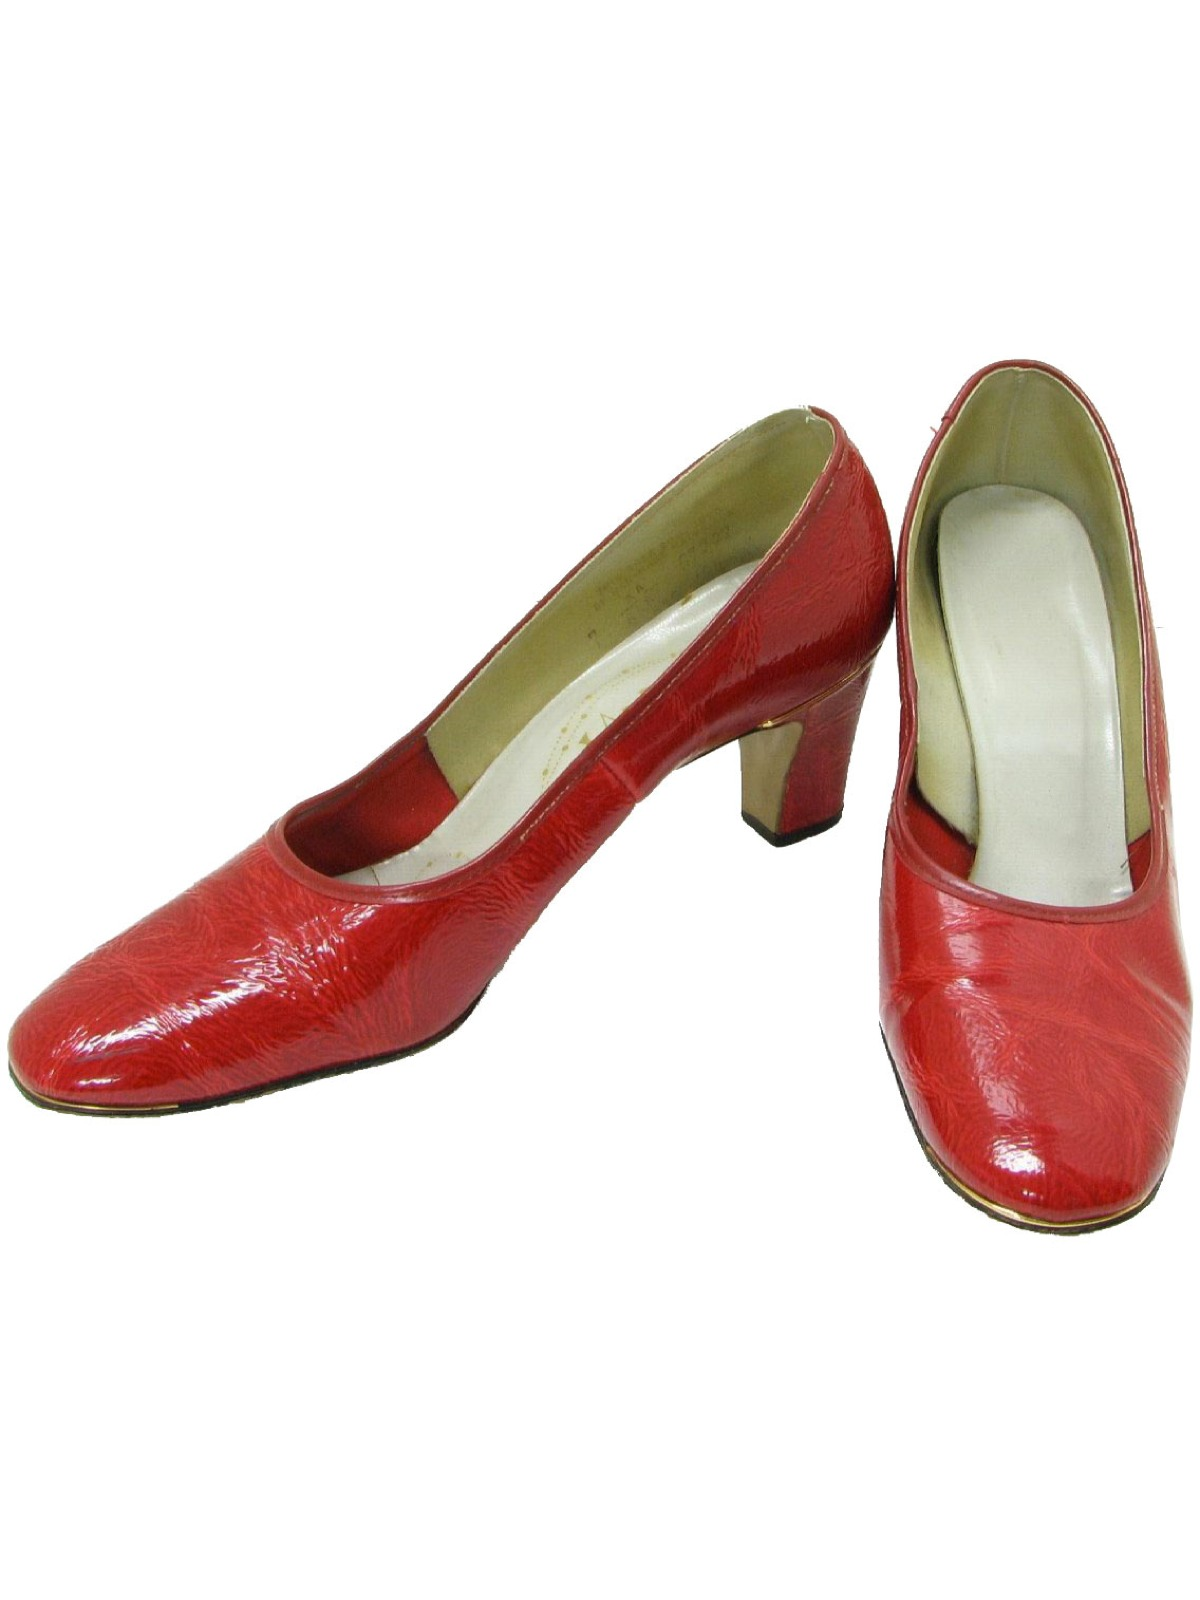 1960s Shoes Larks 60s Larks Womens Red Textured